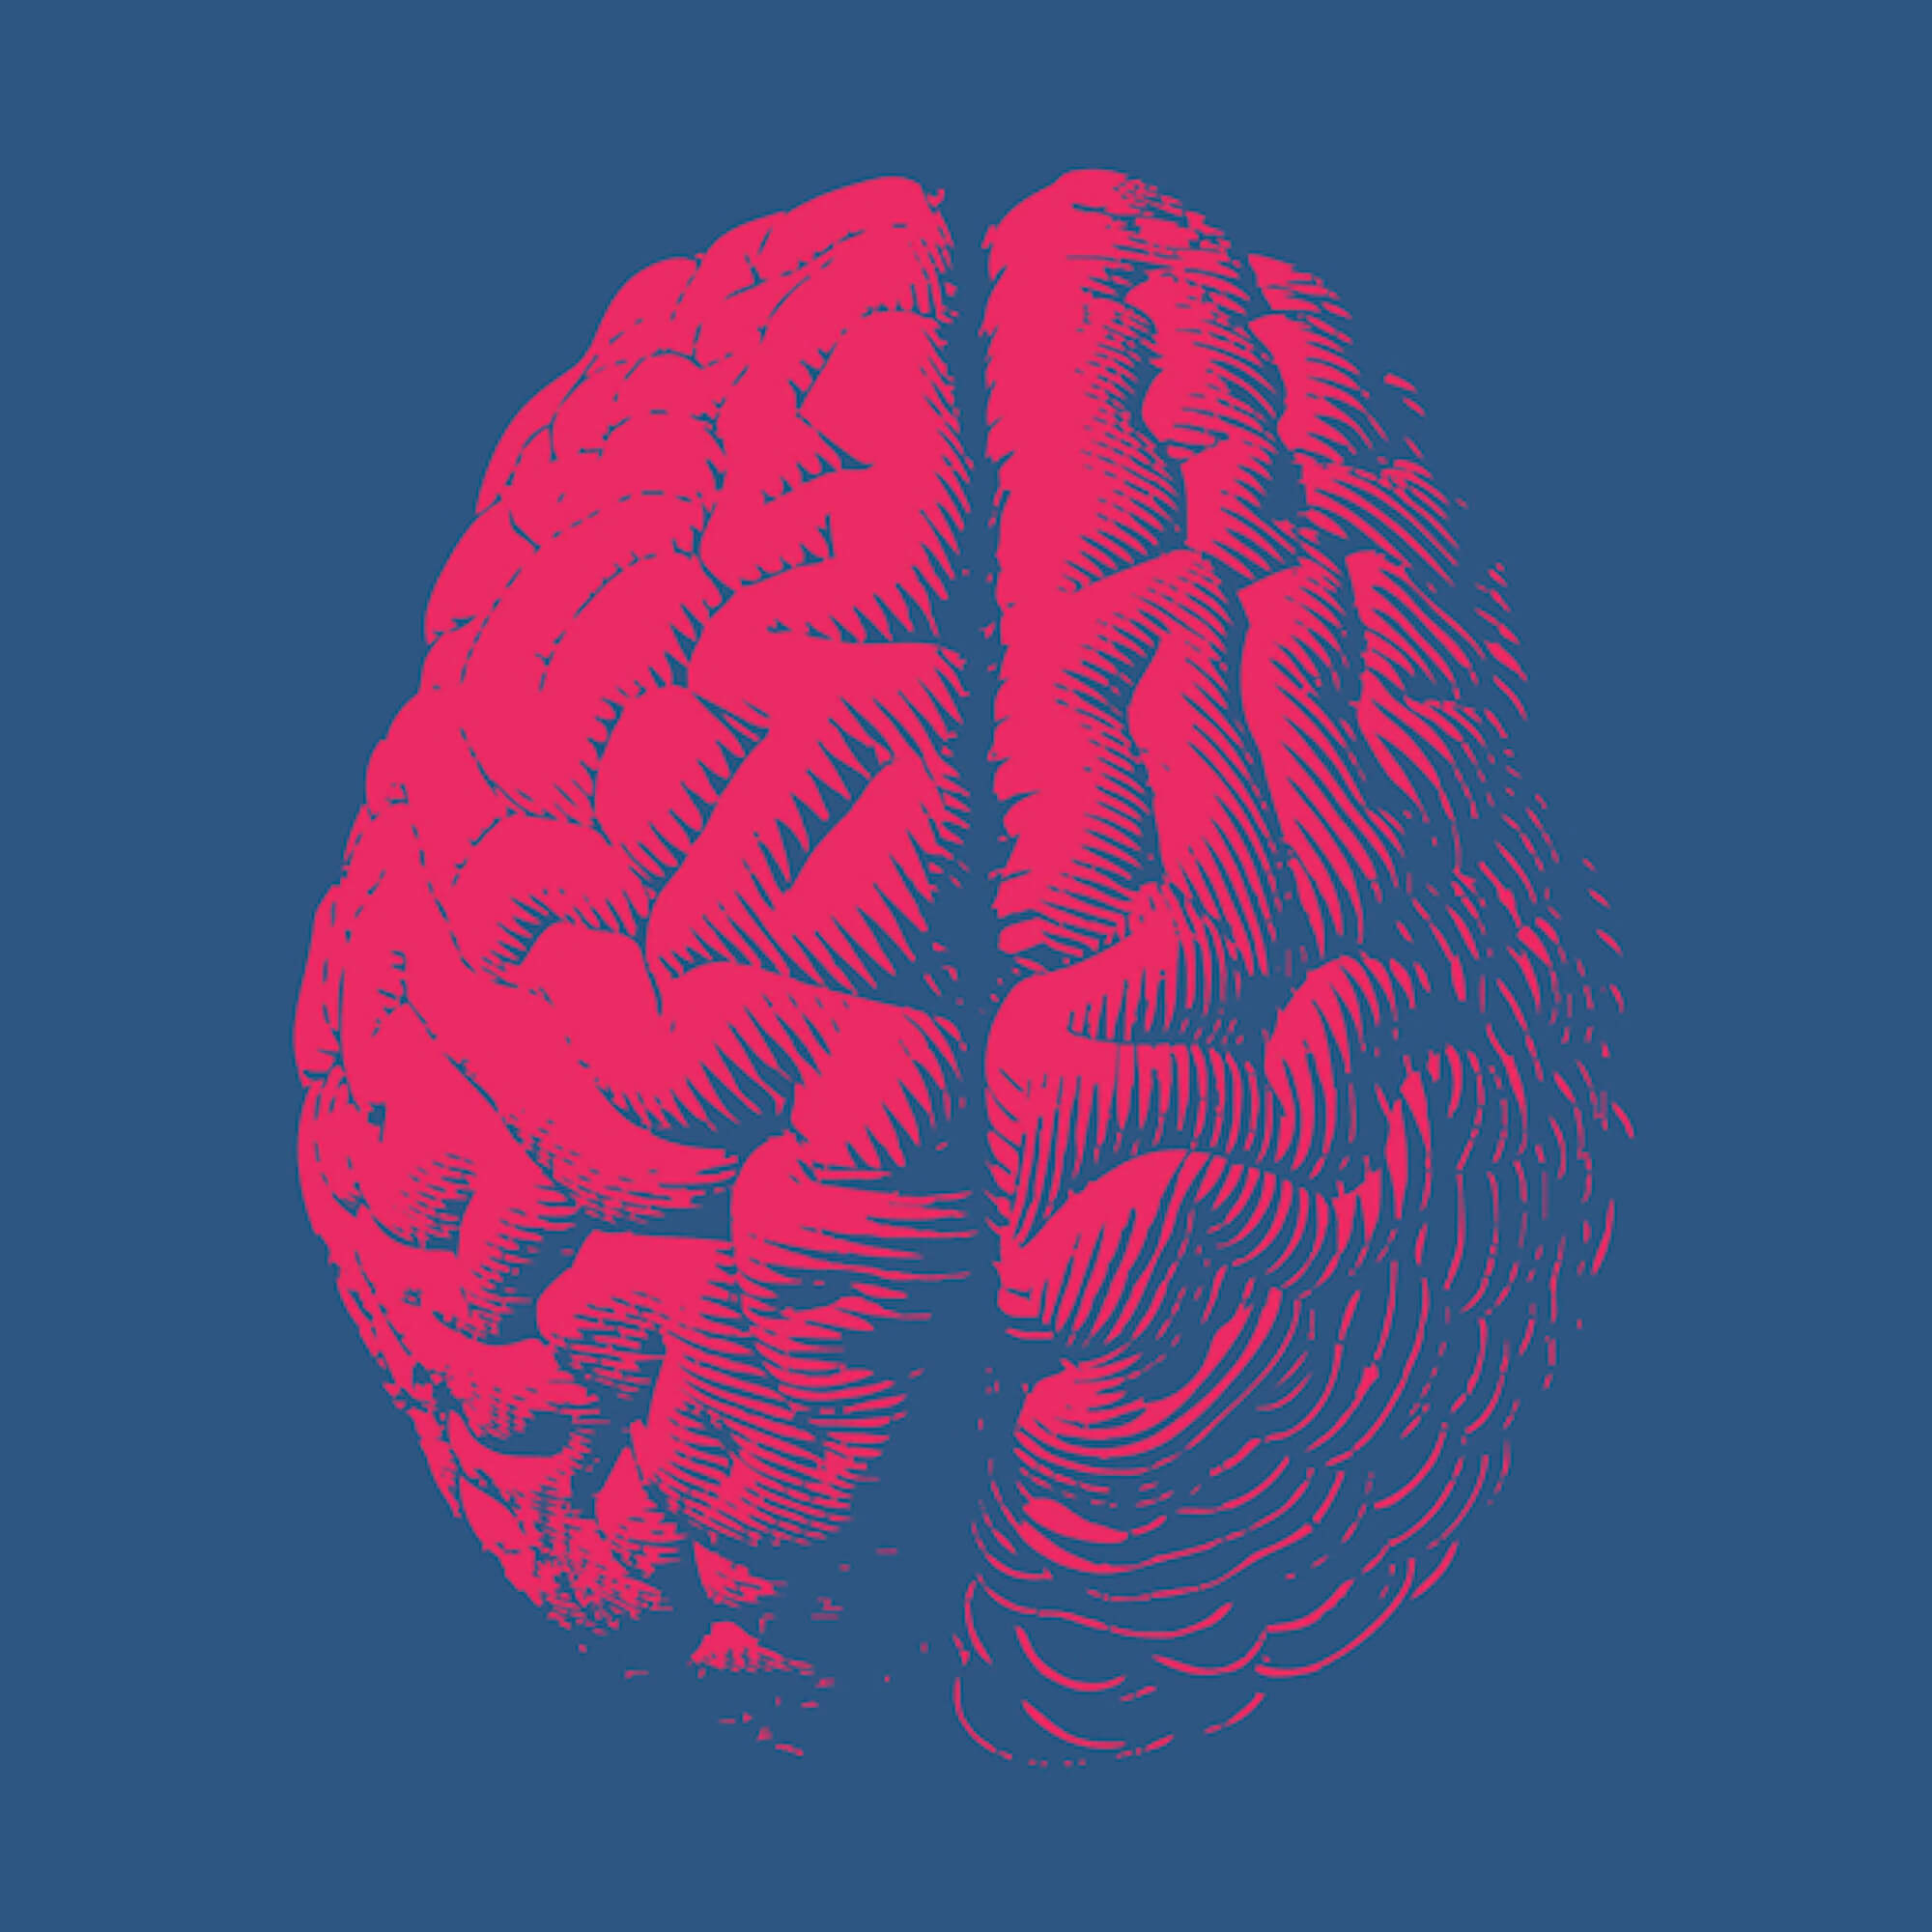 Image of a red brain on a blue background